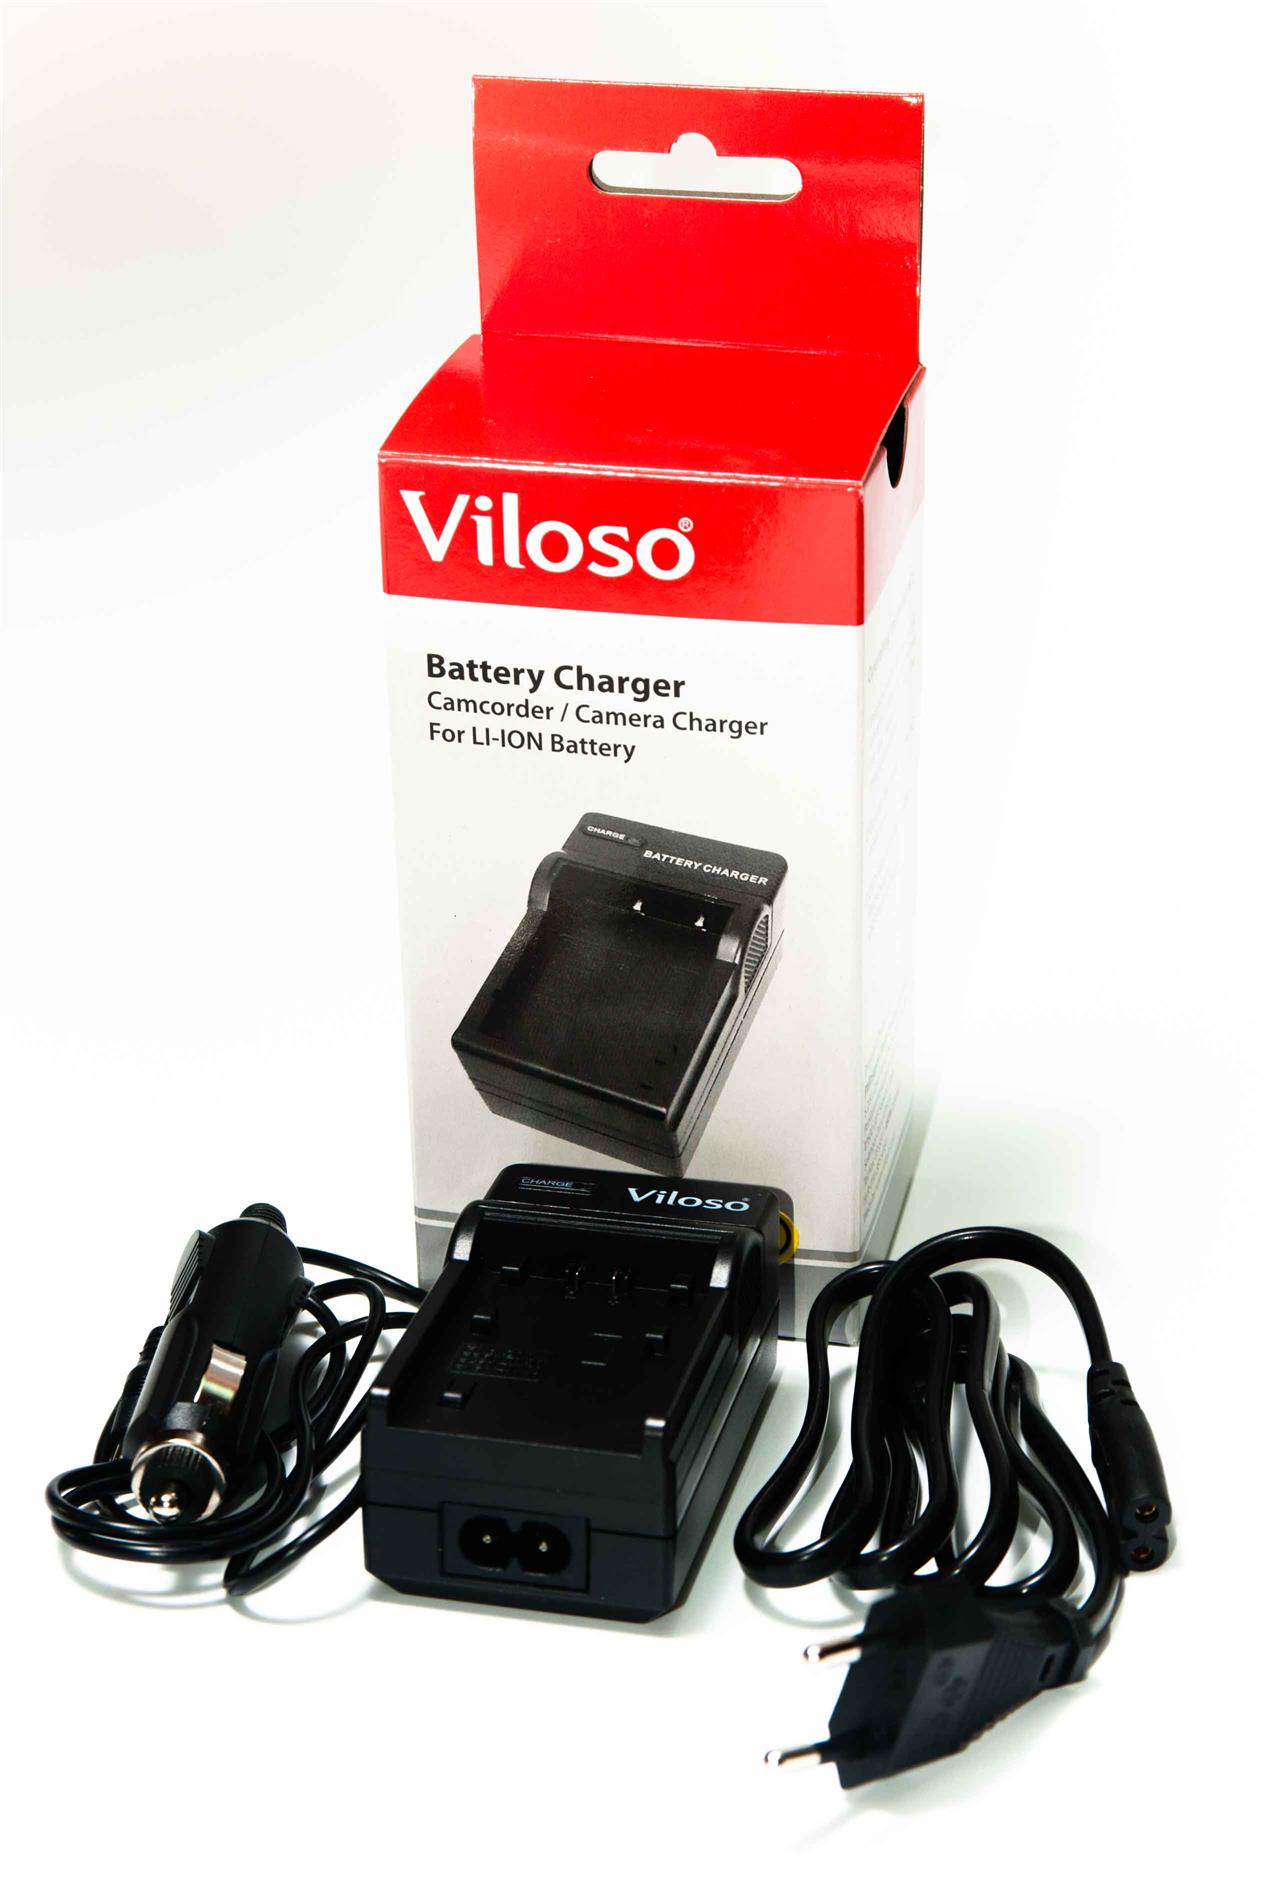 VILOSO camera charger with car adapter for CANON LP-E6 battery